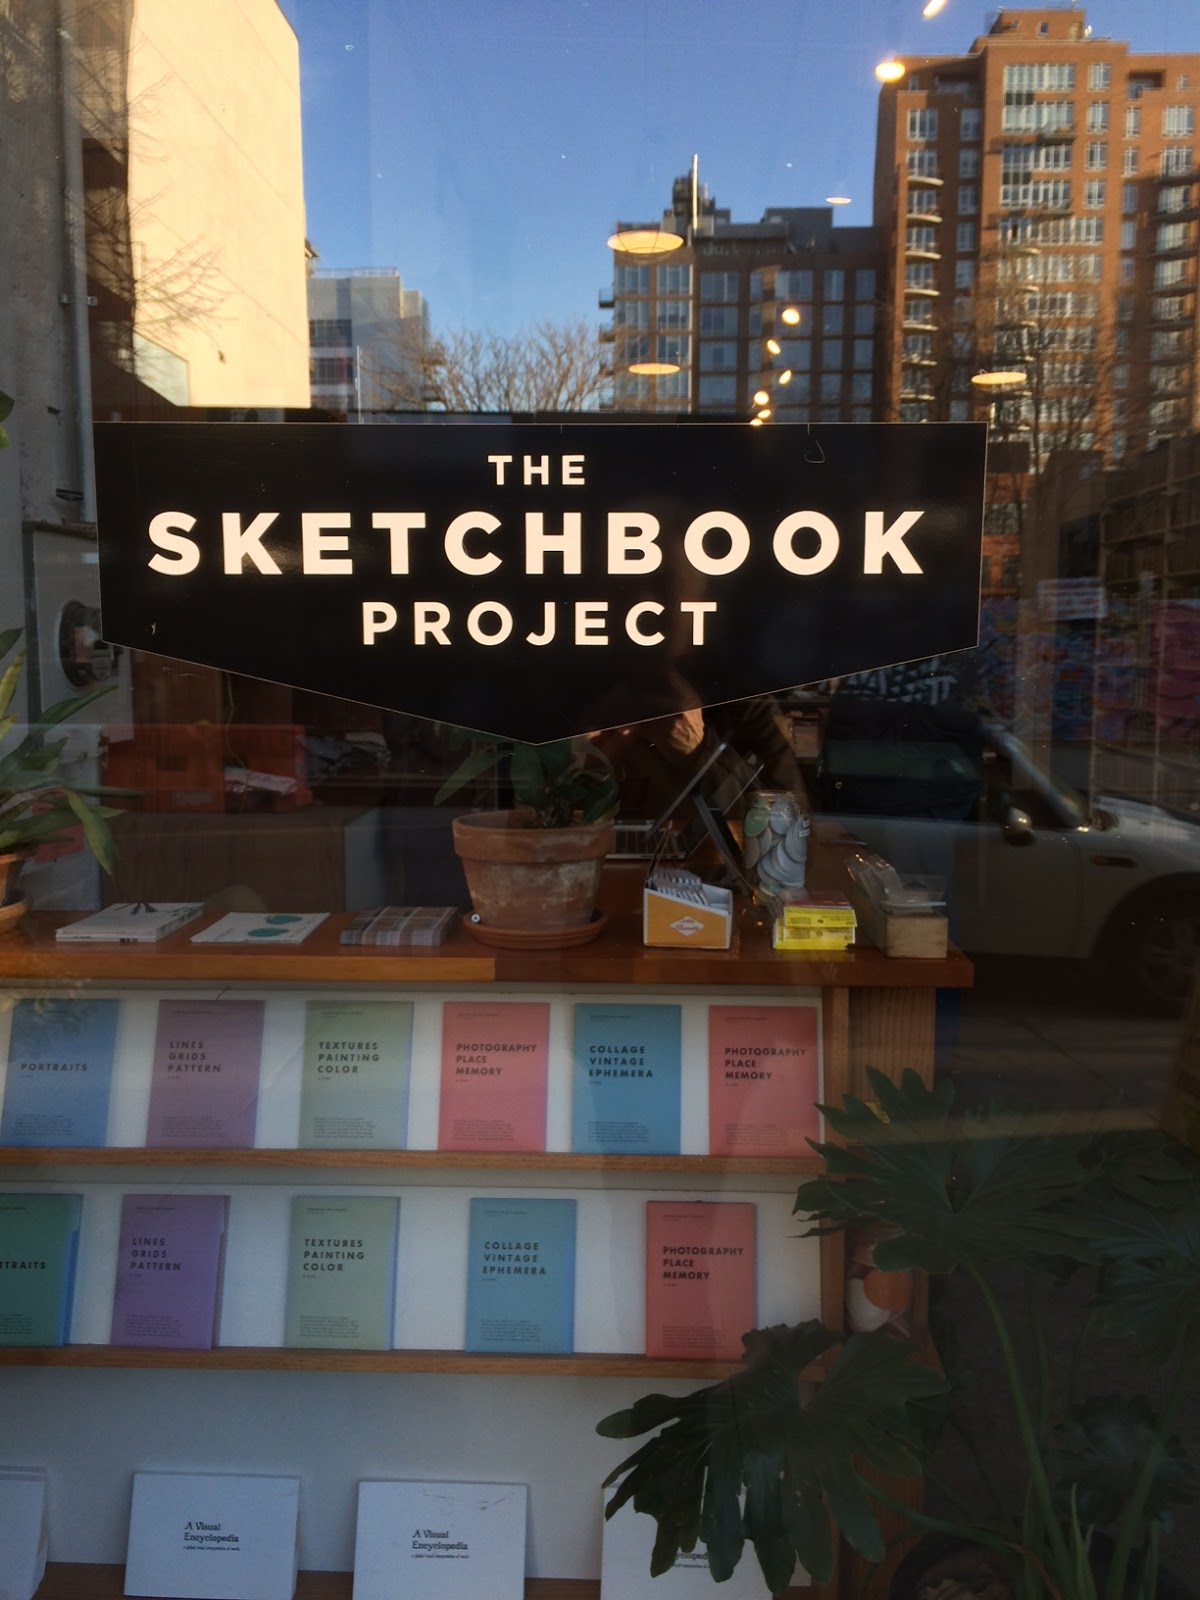 The Brooklyn Gallery Filled with Thousands of Sketchbooks